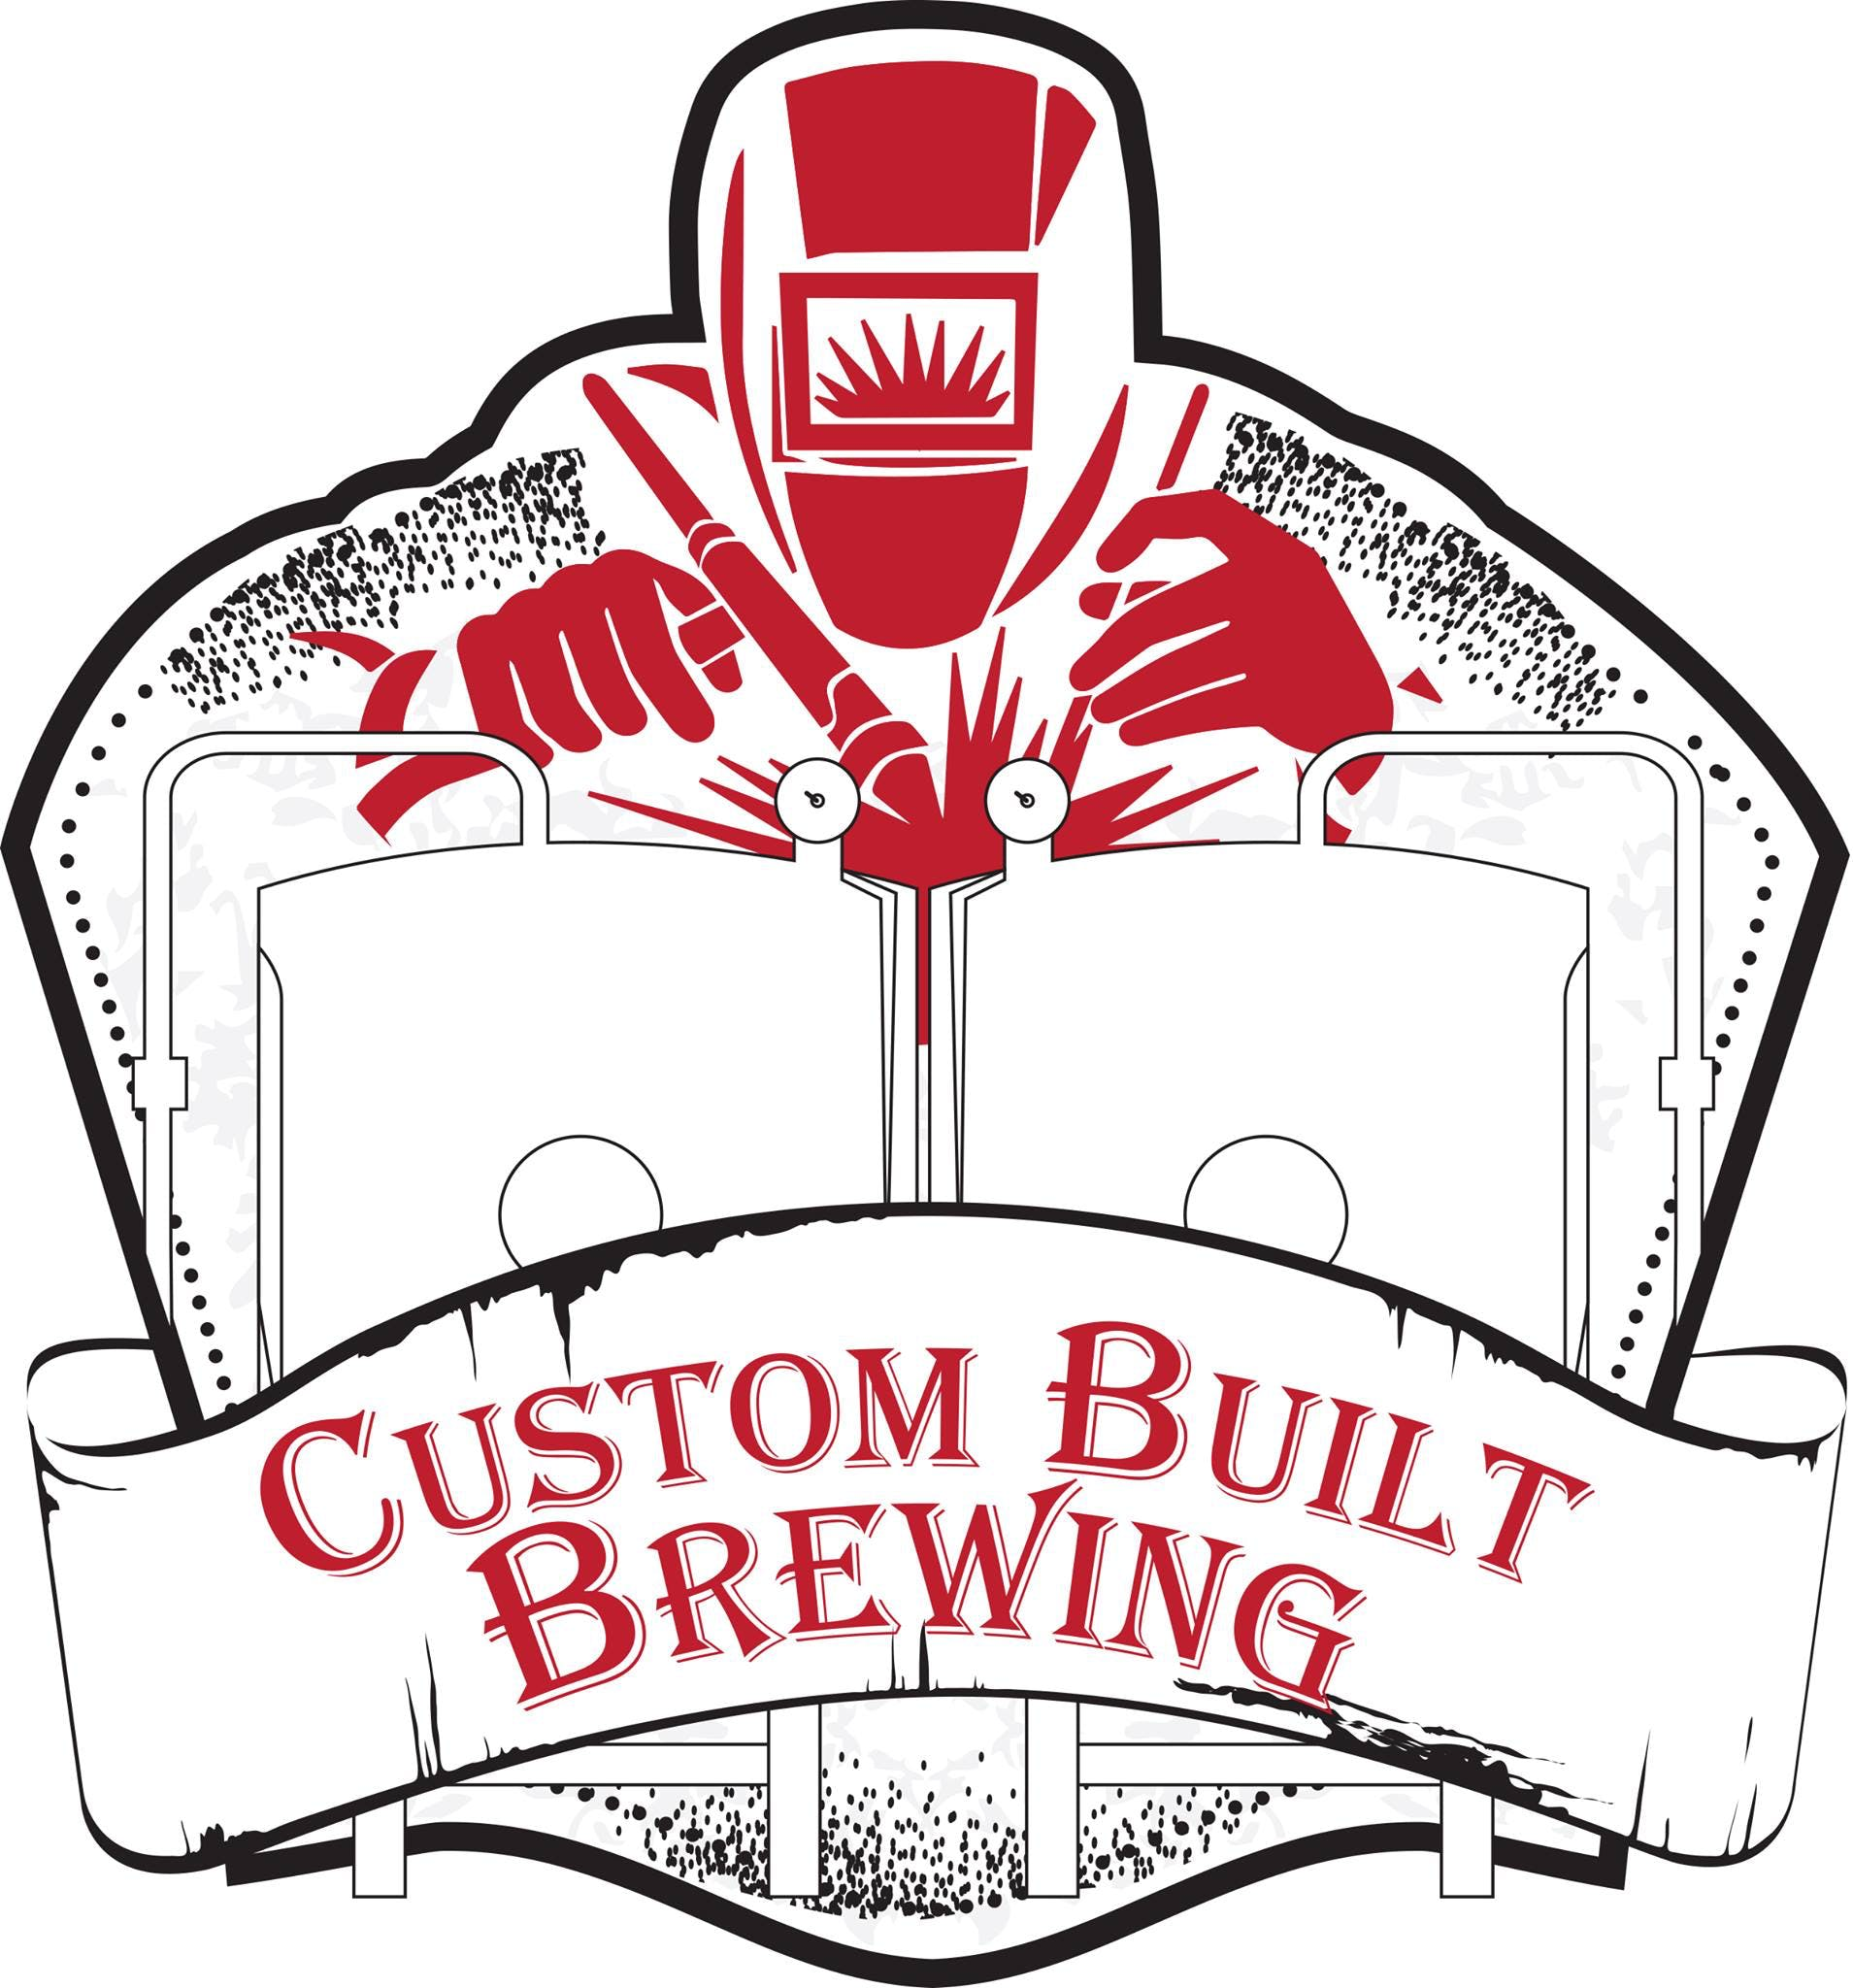 Custom Built Brewing